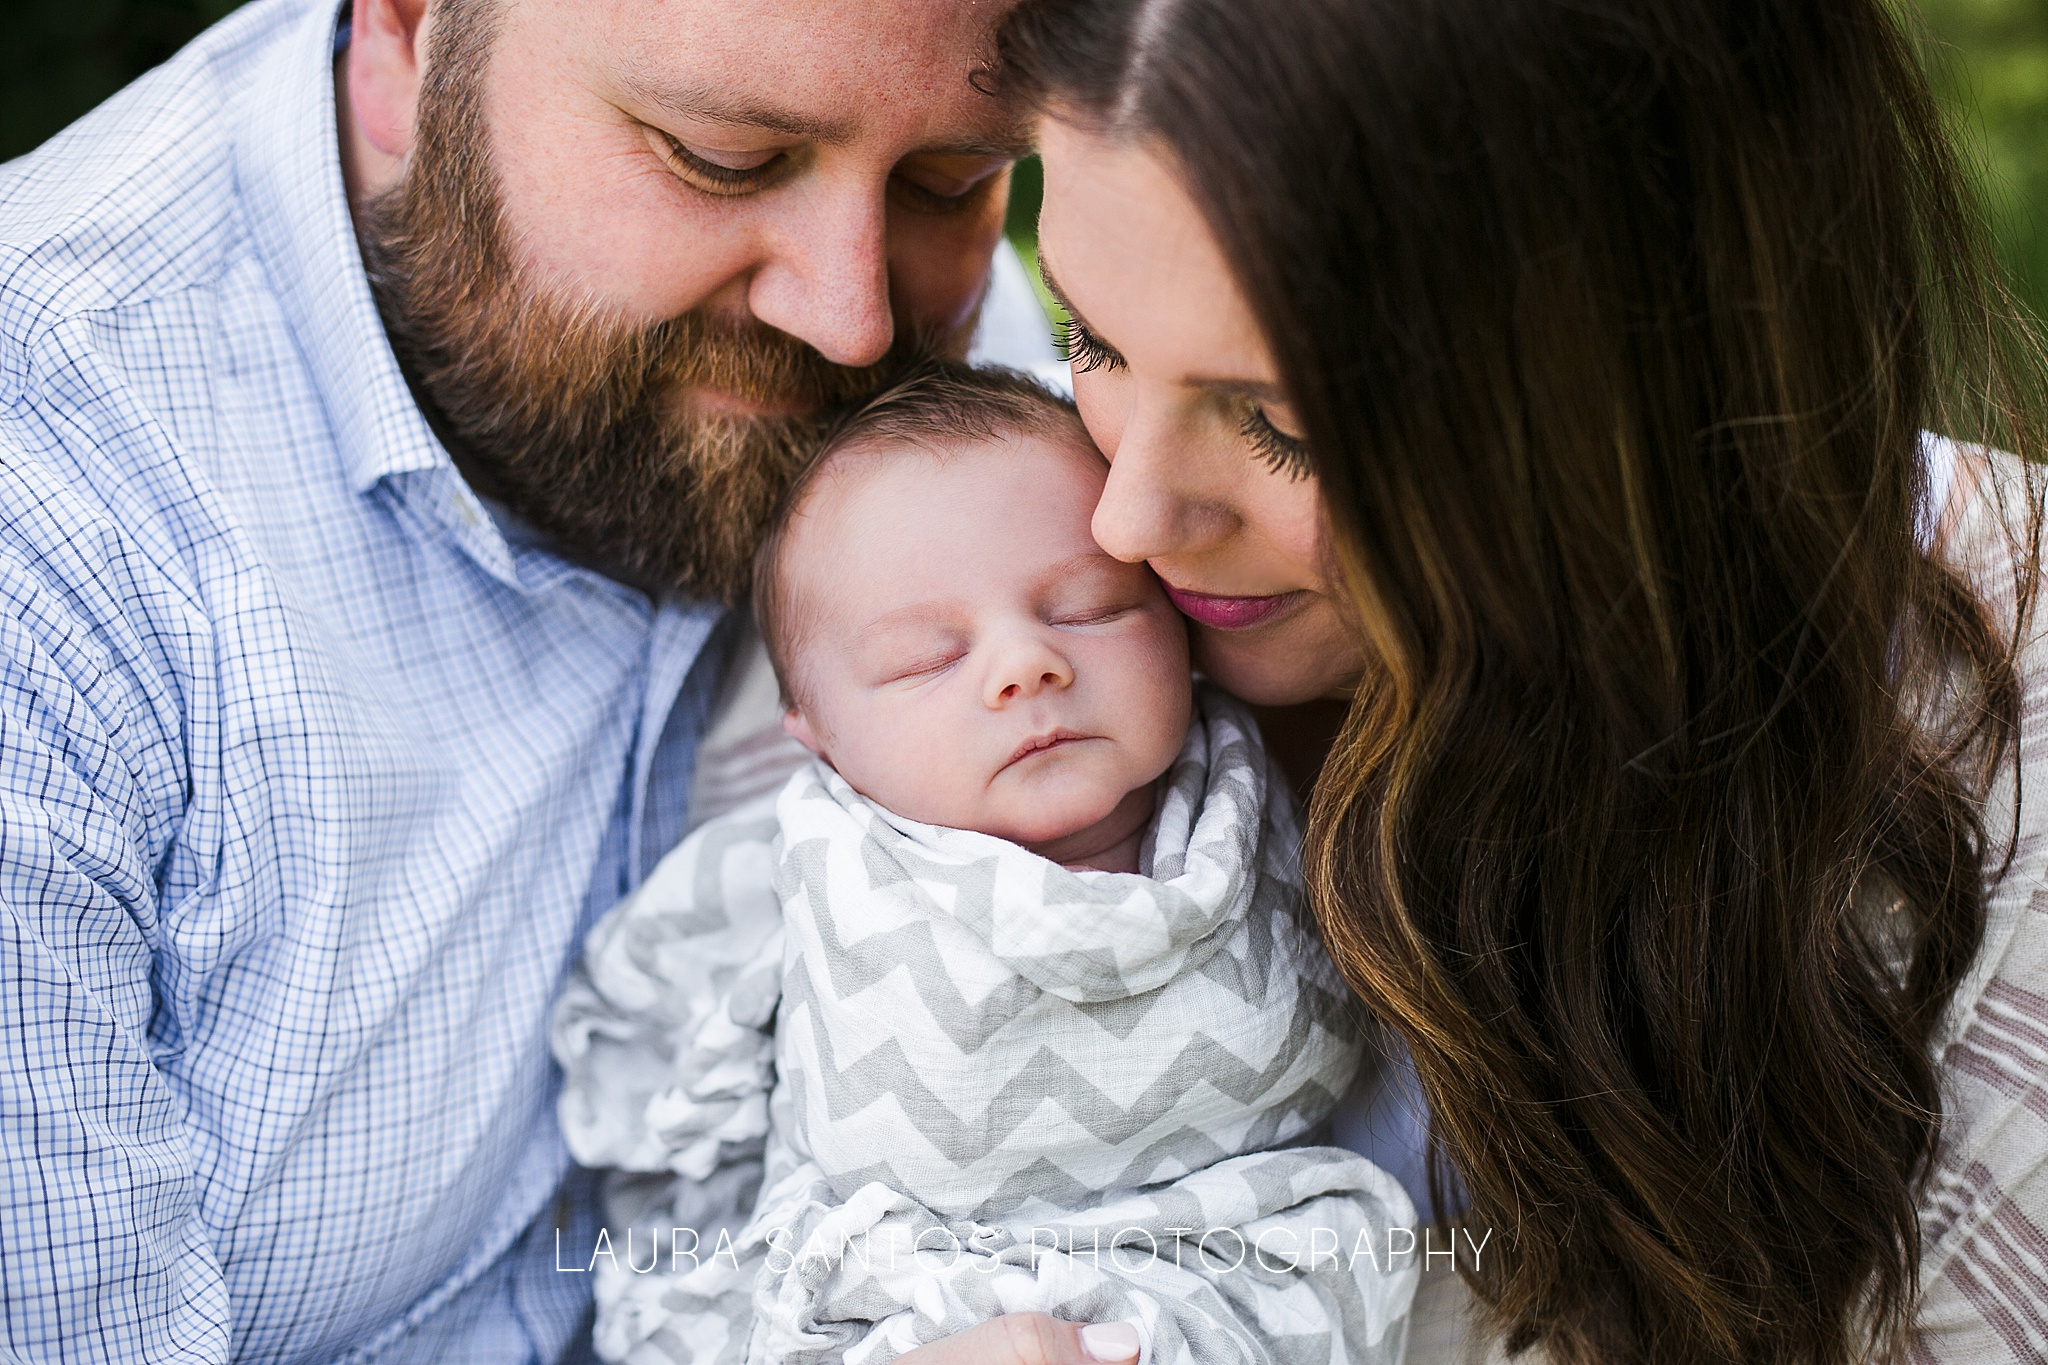 Laura Santos Photography Portland Oregon Family Photographer_0981.jpg